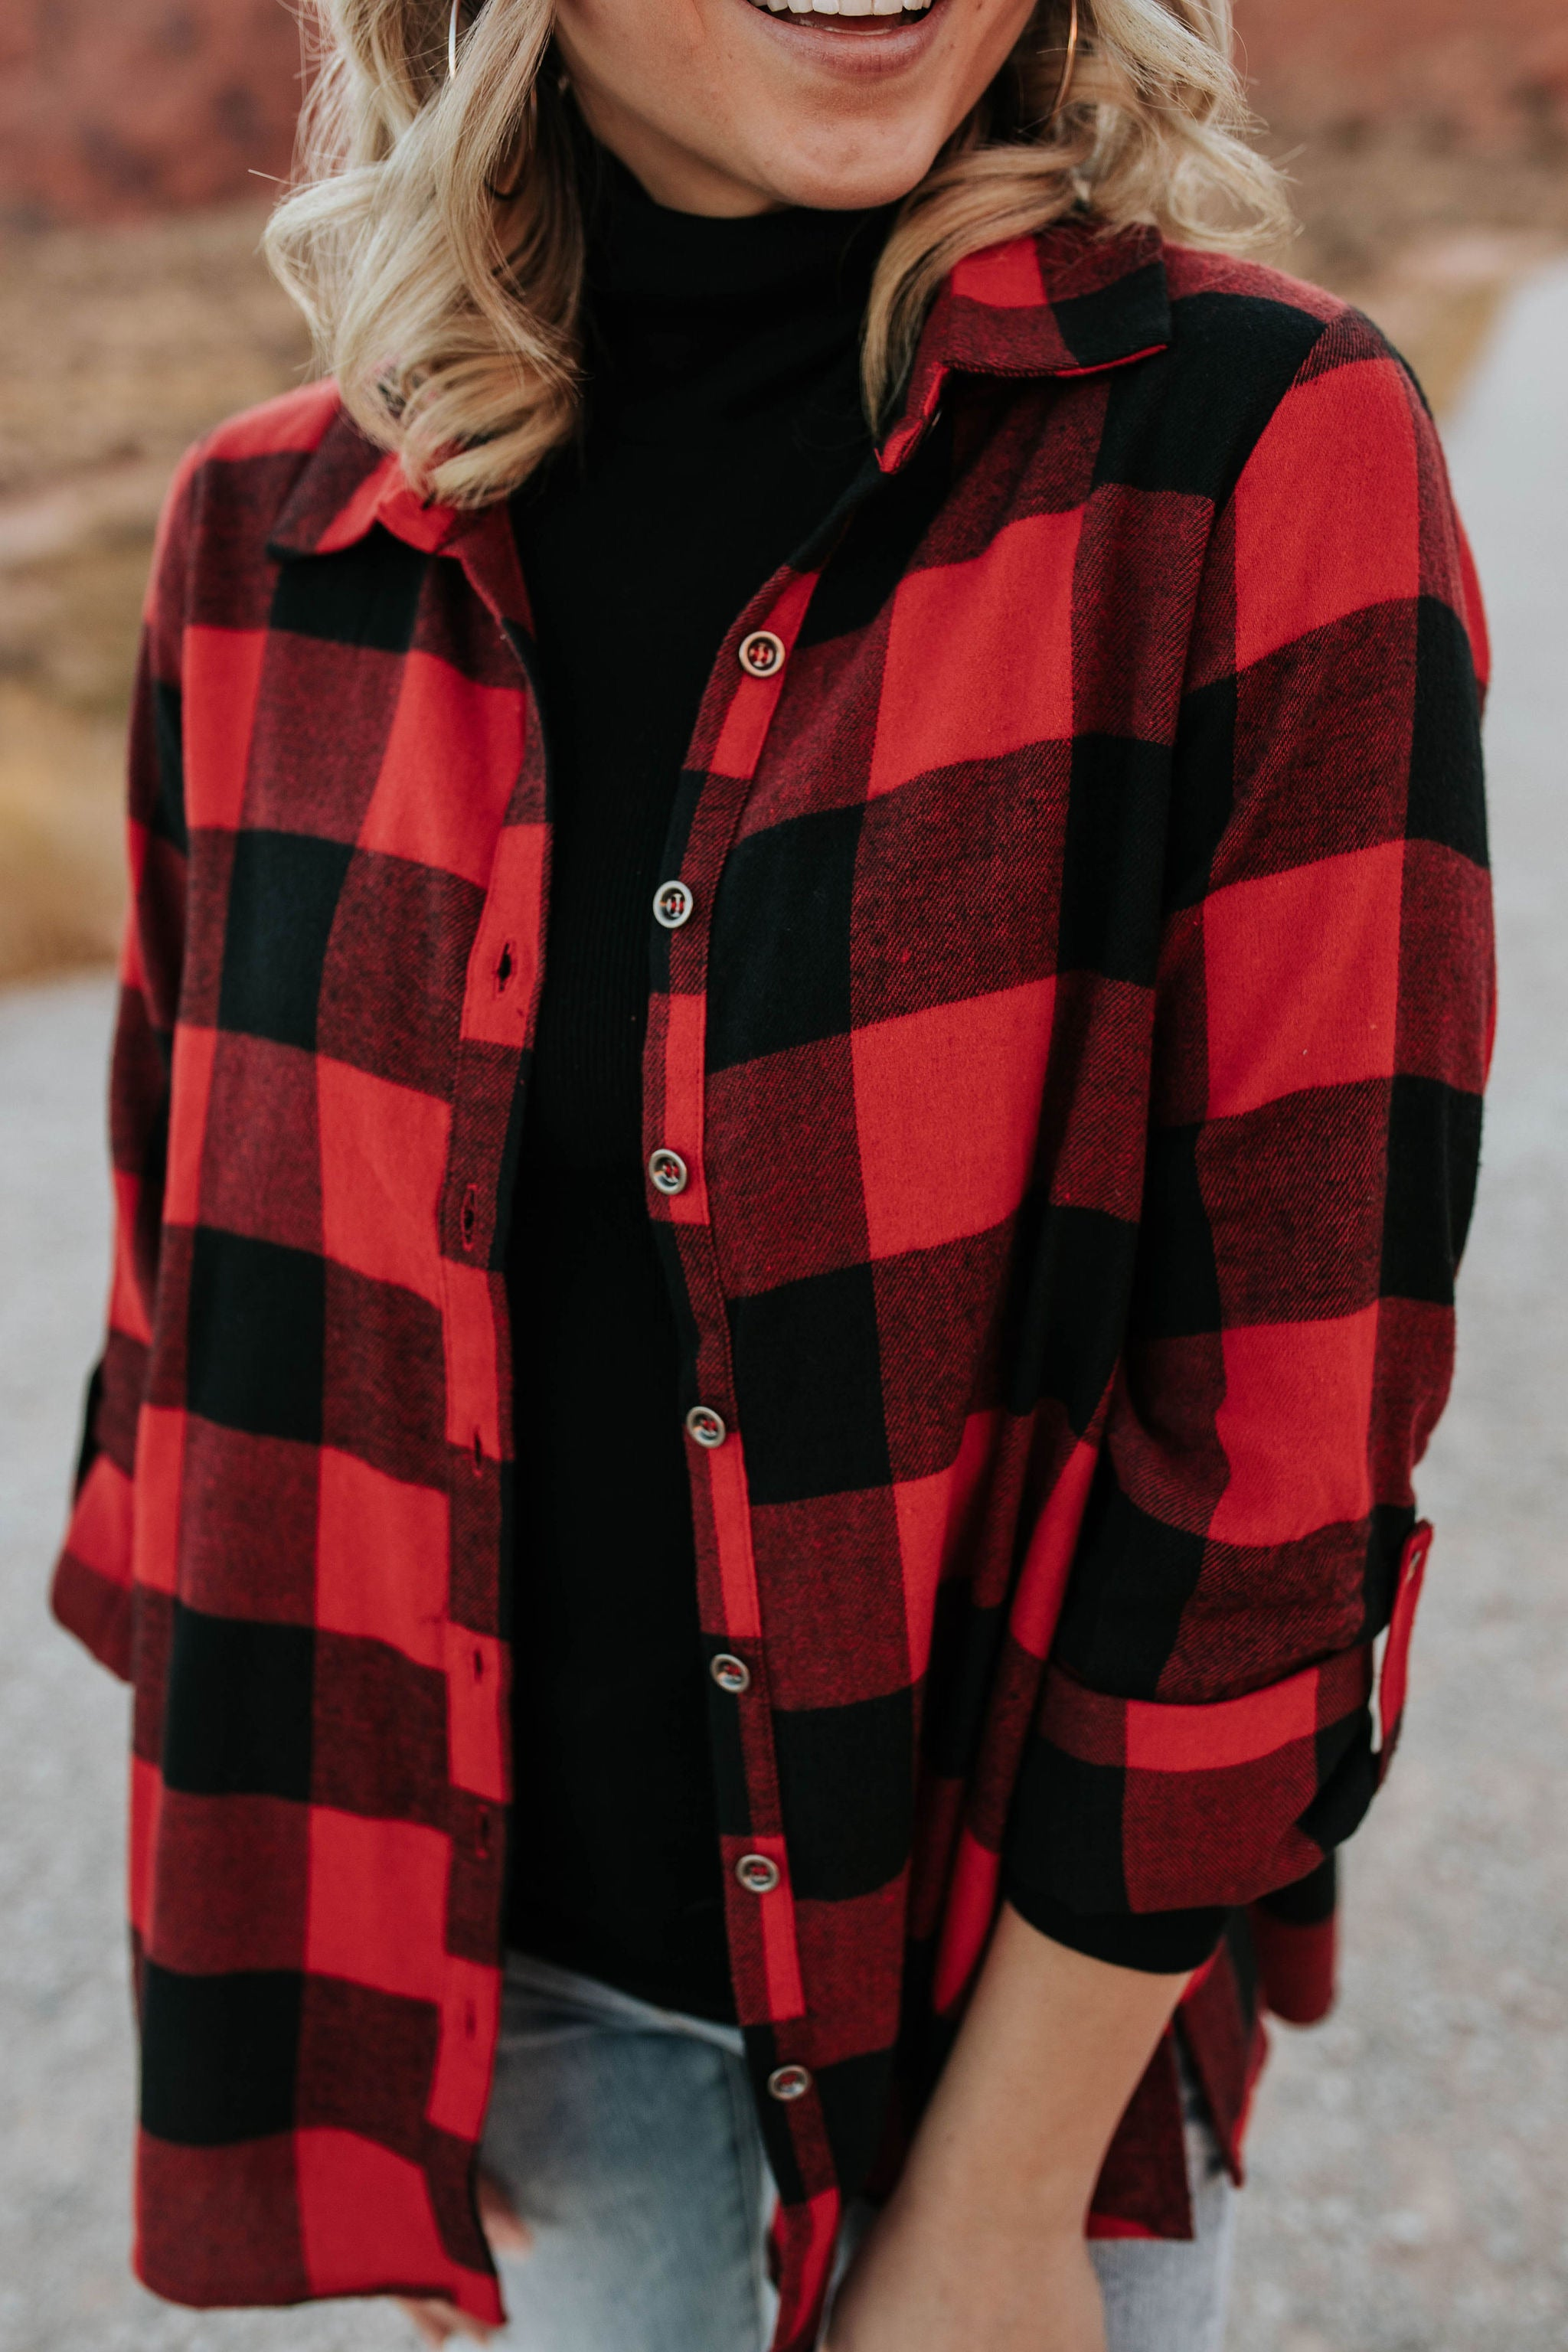 THE SEDONA PLAID TOP IN BUFFALO RED